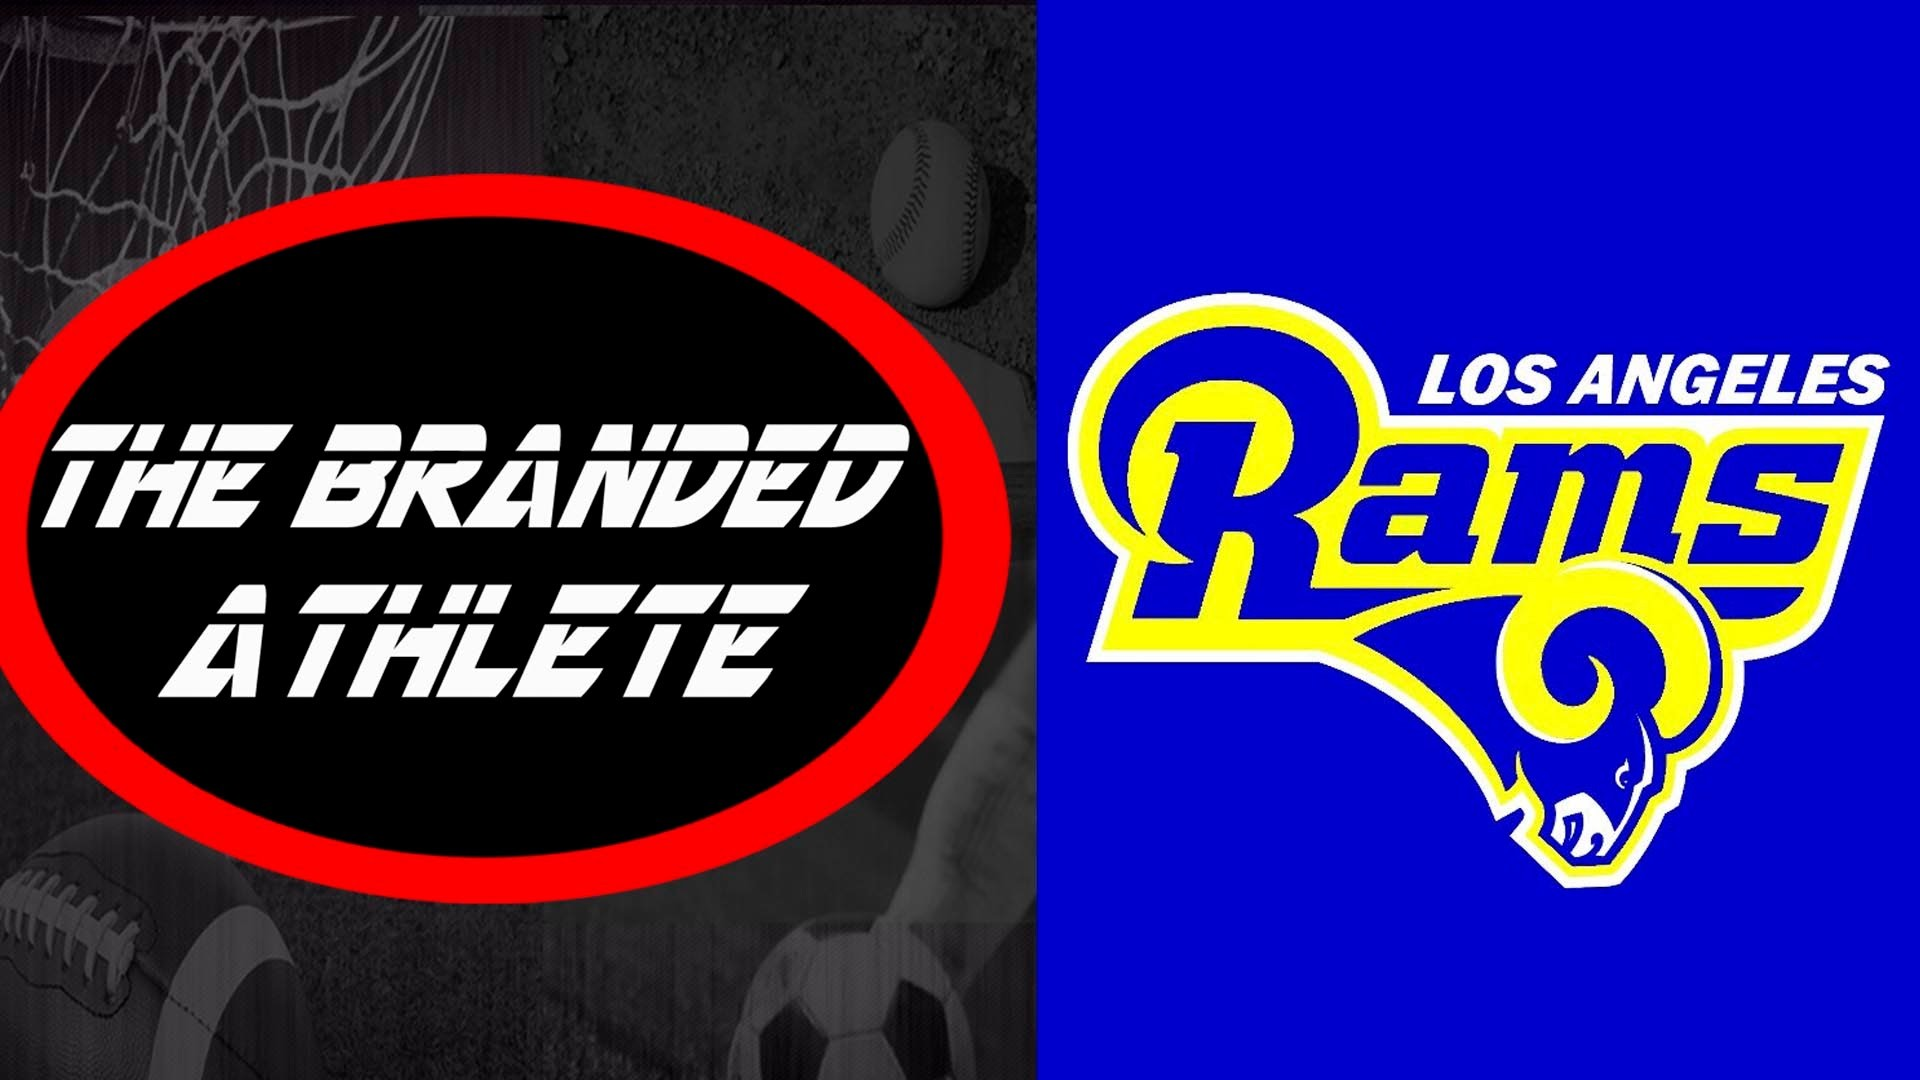 Rams Moving To Los Angeles, All Time NBA Greats and More! | The Branded  Athlete – YouTube